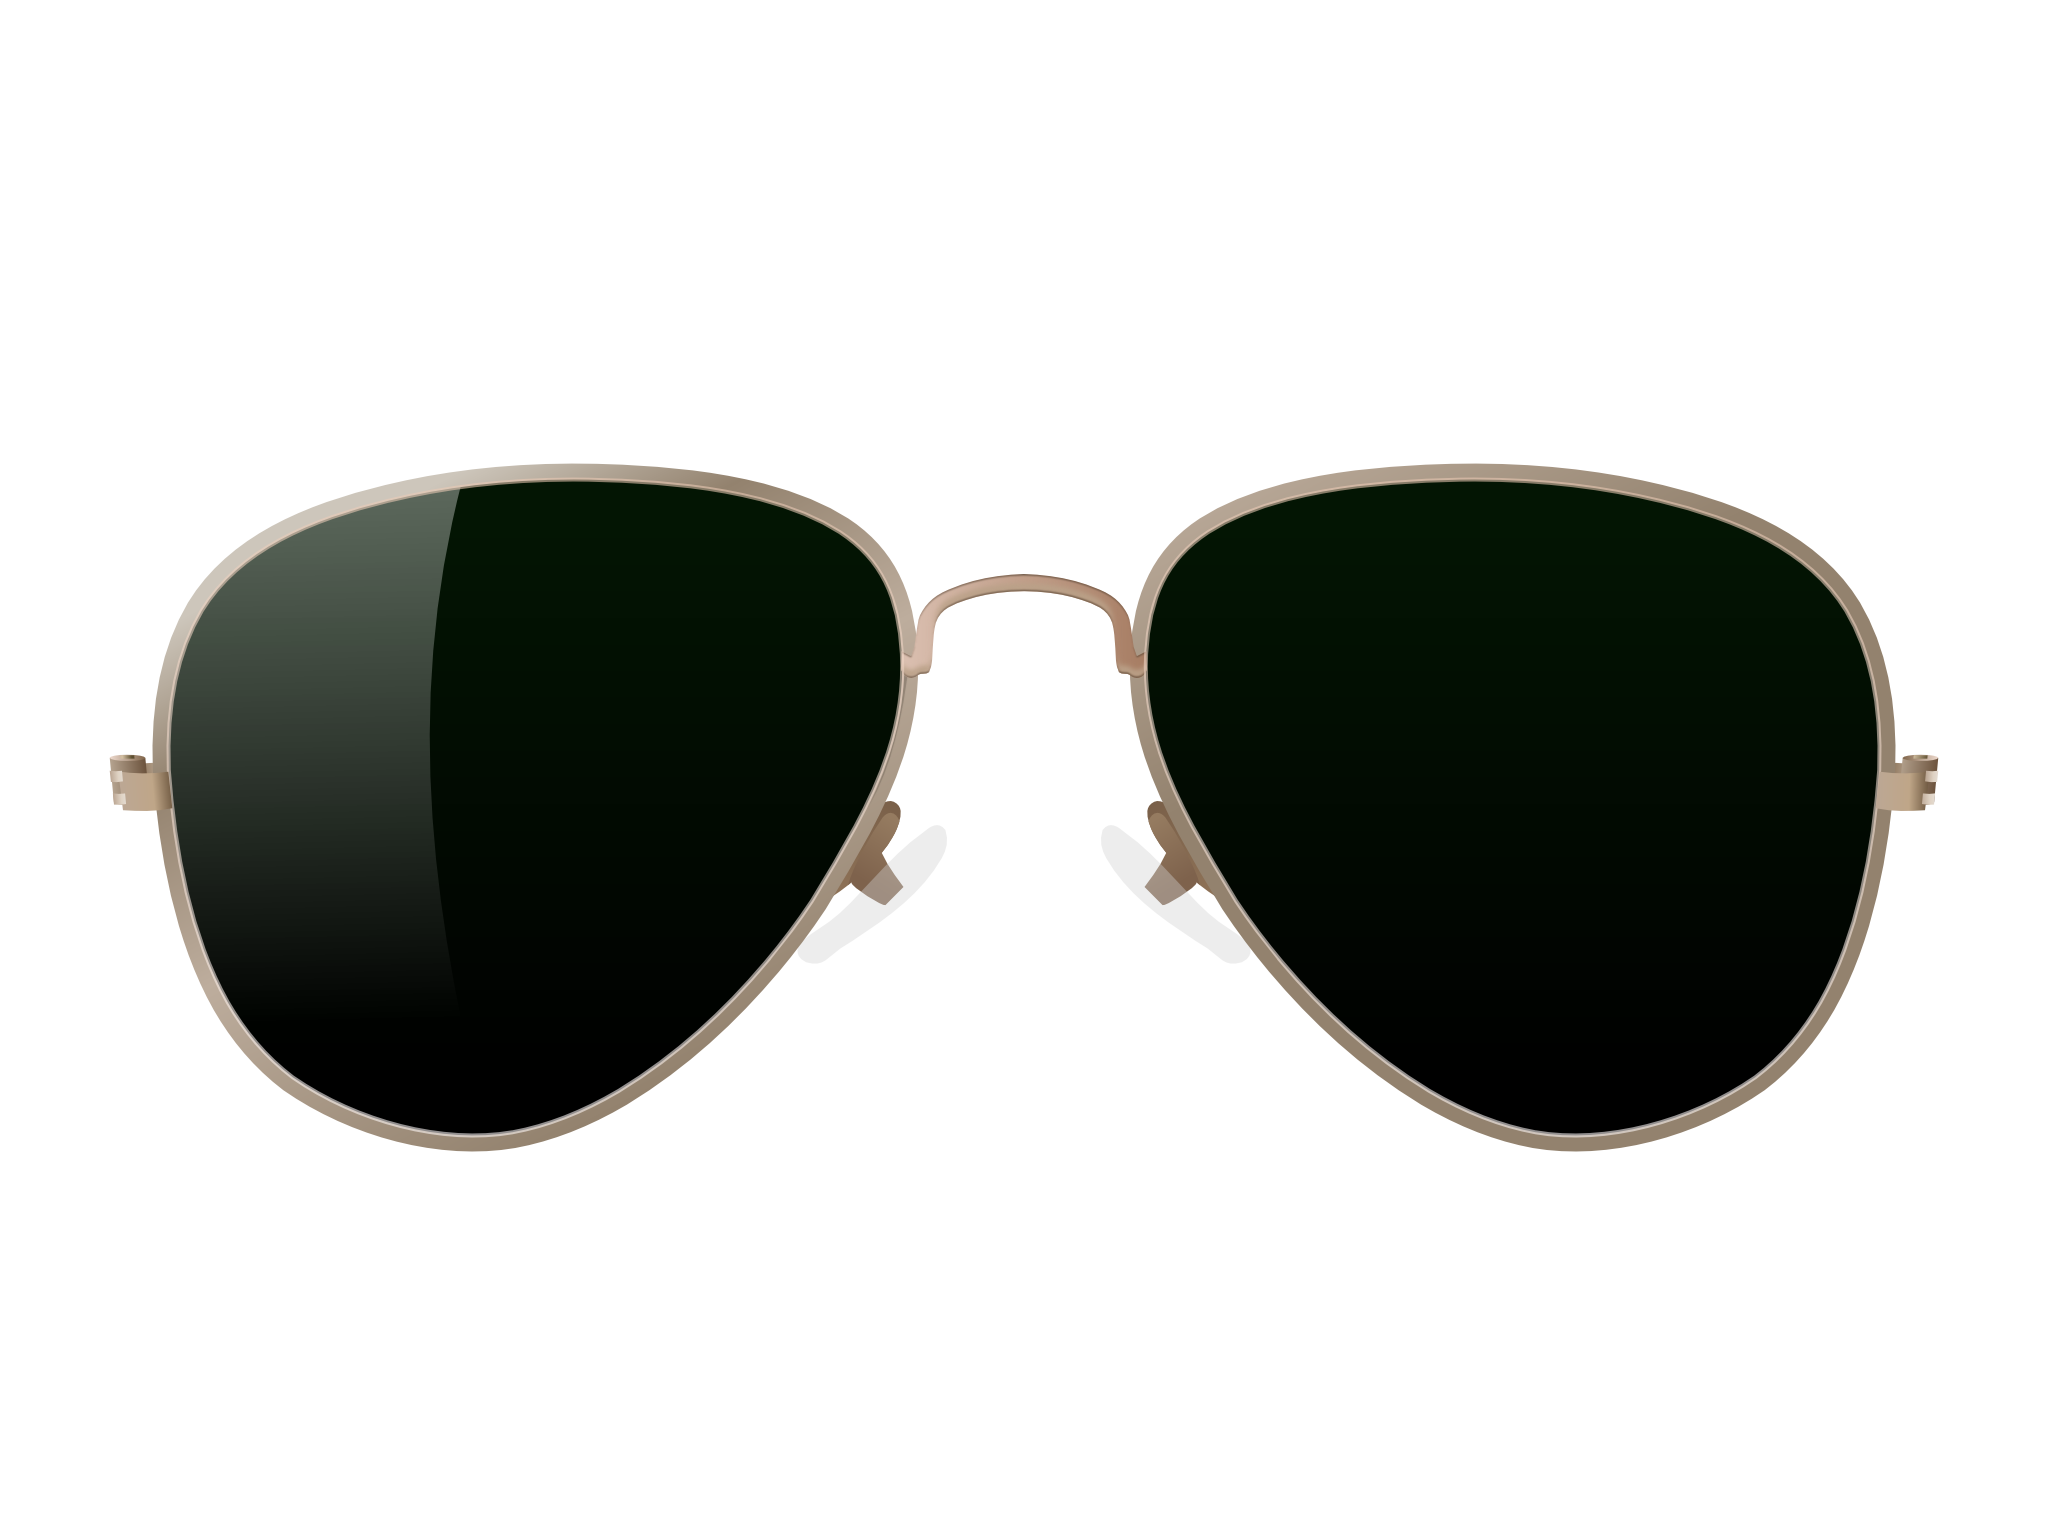 Png sunglasses. Aviator sunglass free download